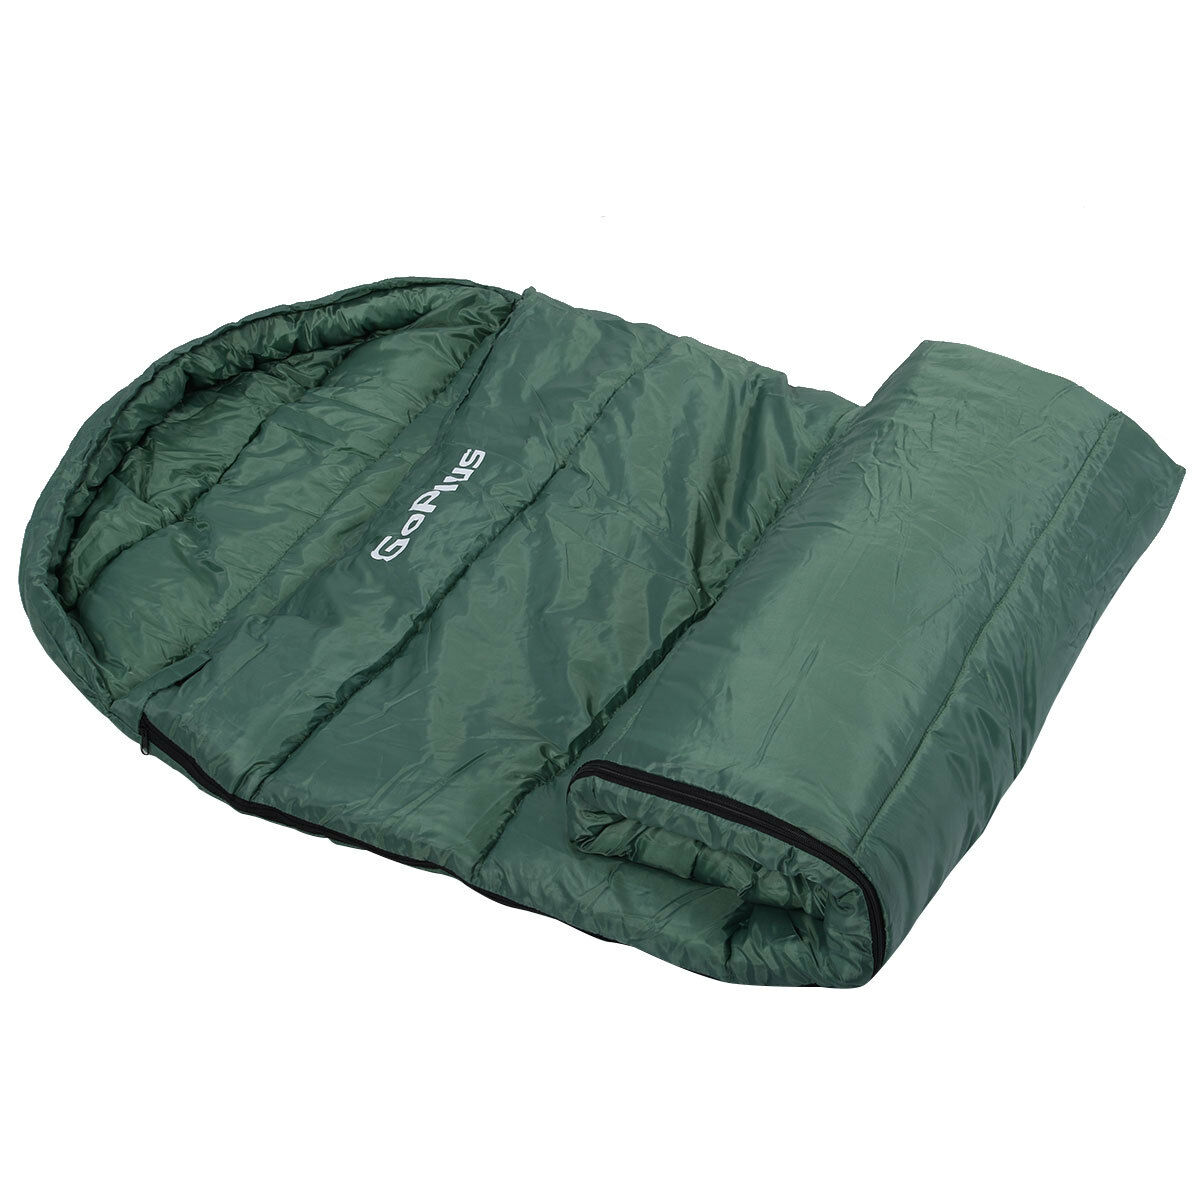 New-Mummy-Waterproof-Outdoor-Sleeping-Bag-Camping-Travel-Hiking-W-Carrying-Bag thumbnail 13